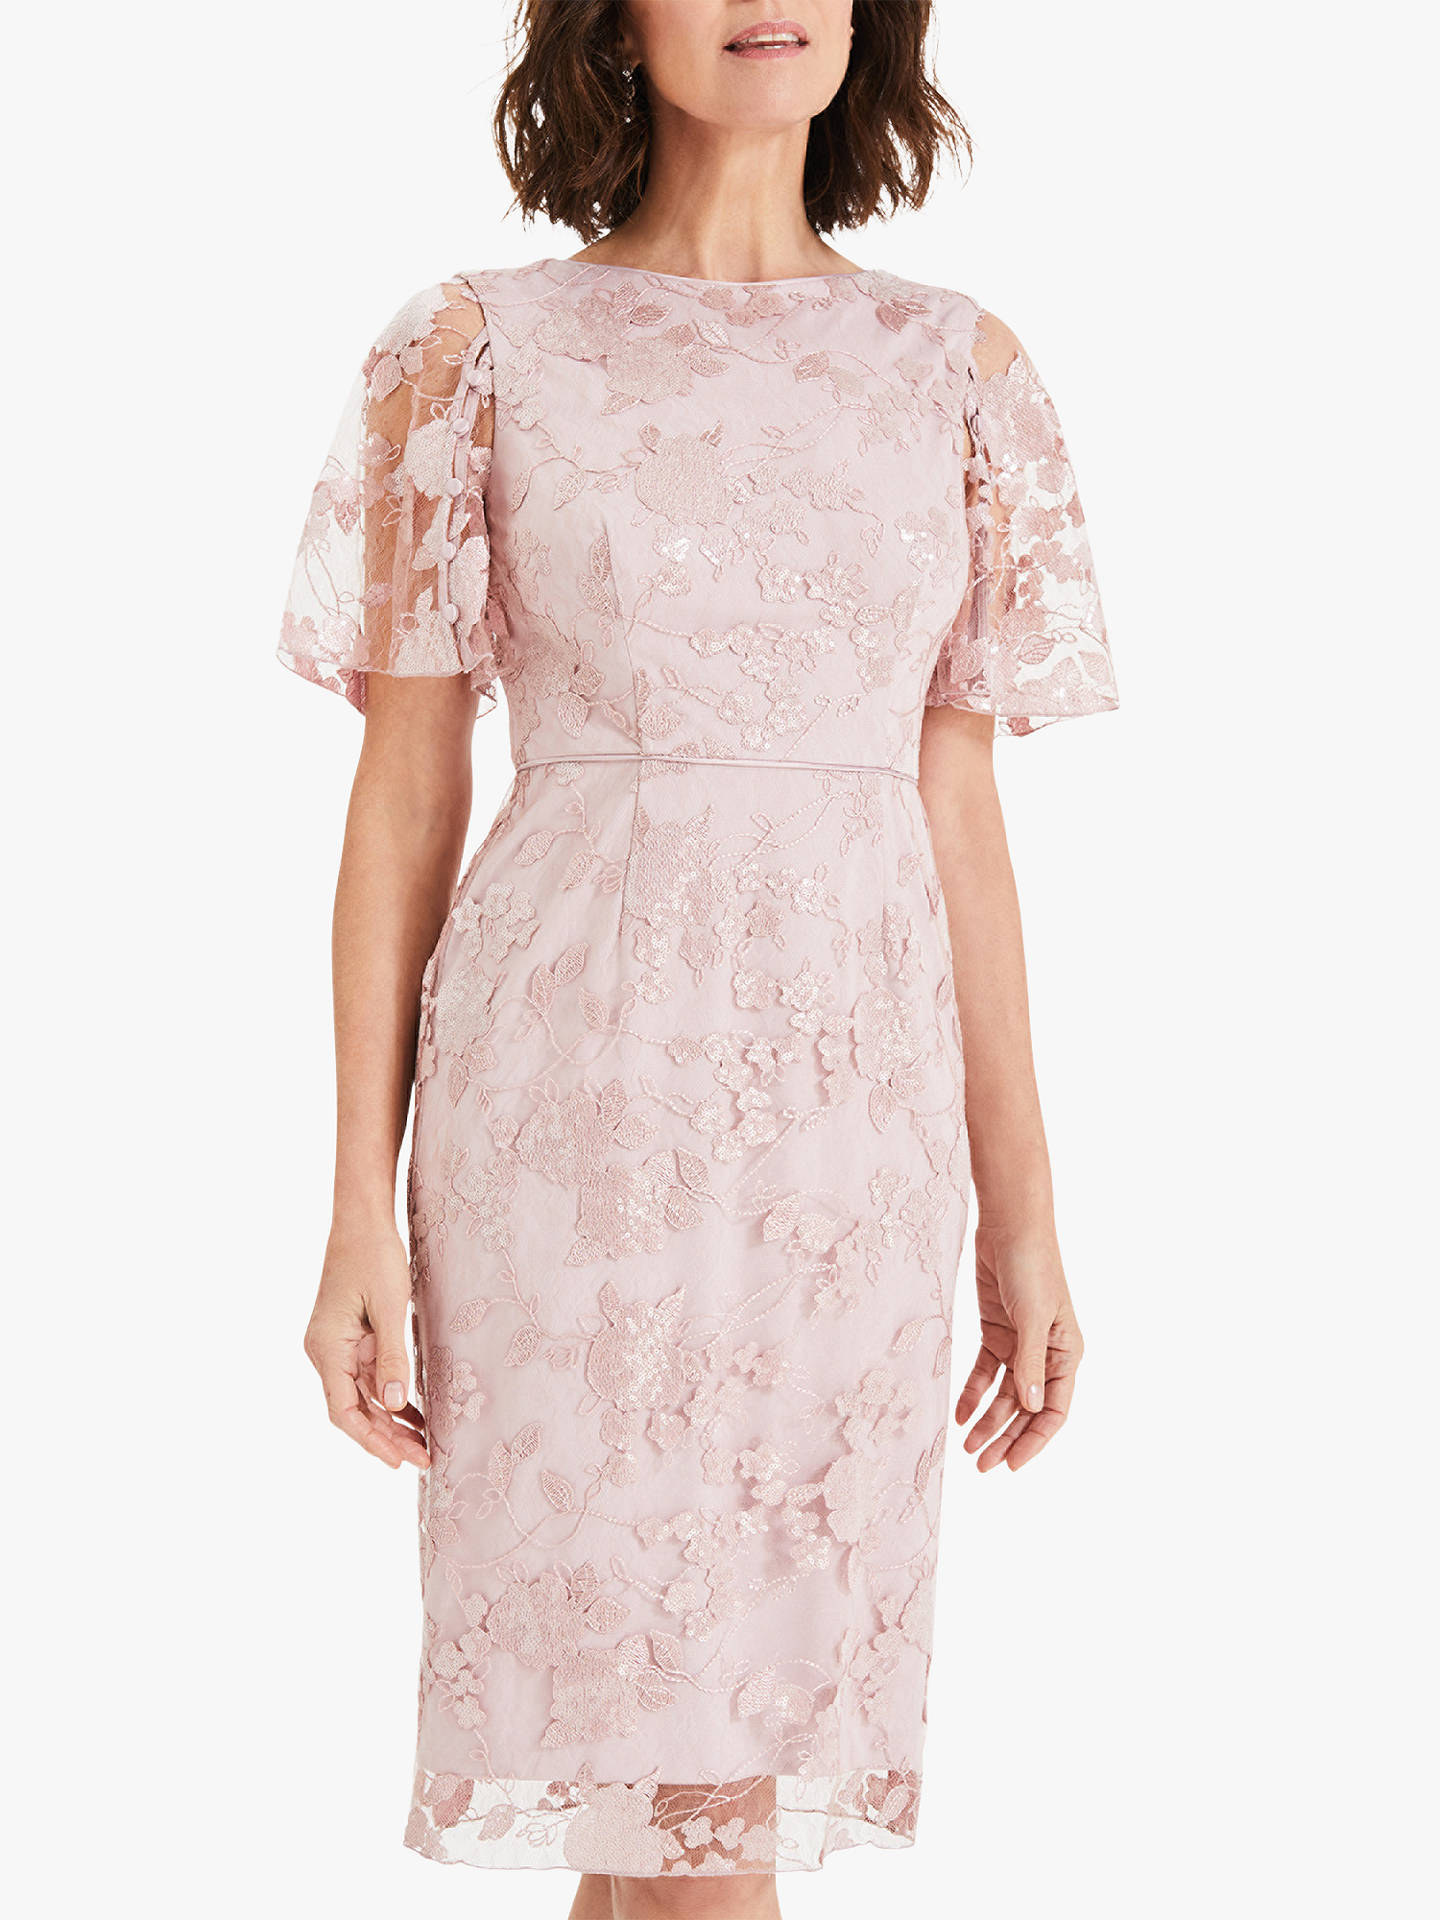 Phase Eight Harlow Sequin Lace Dress Dusty Rose